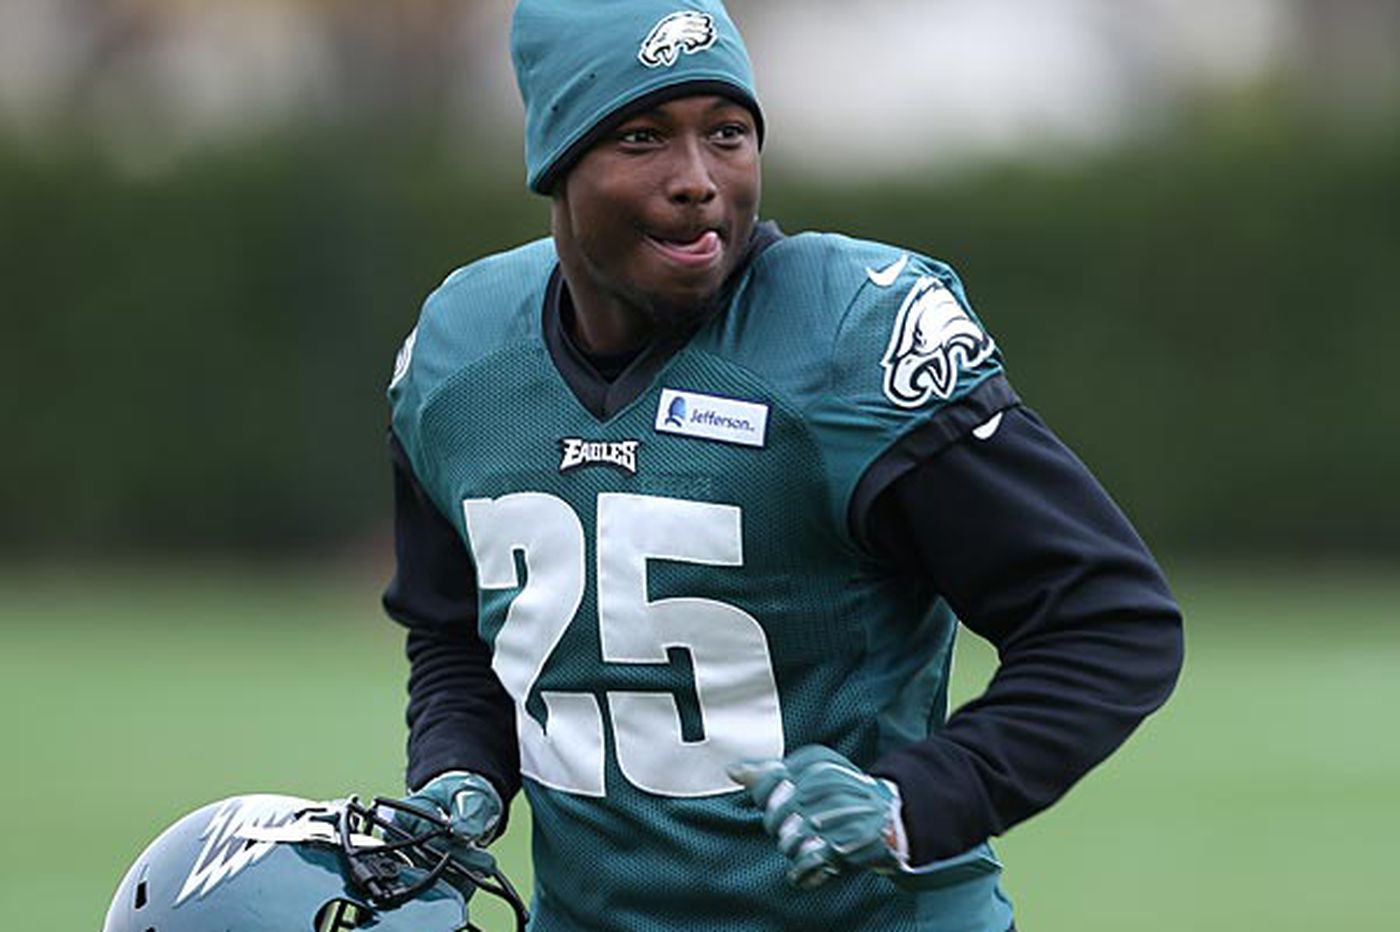 Eagles need McCoy to carry them over Packers